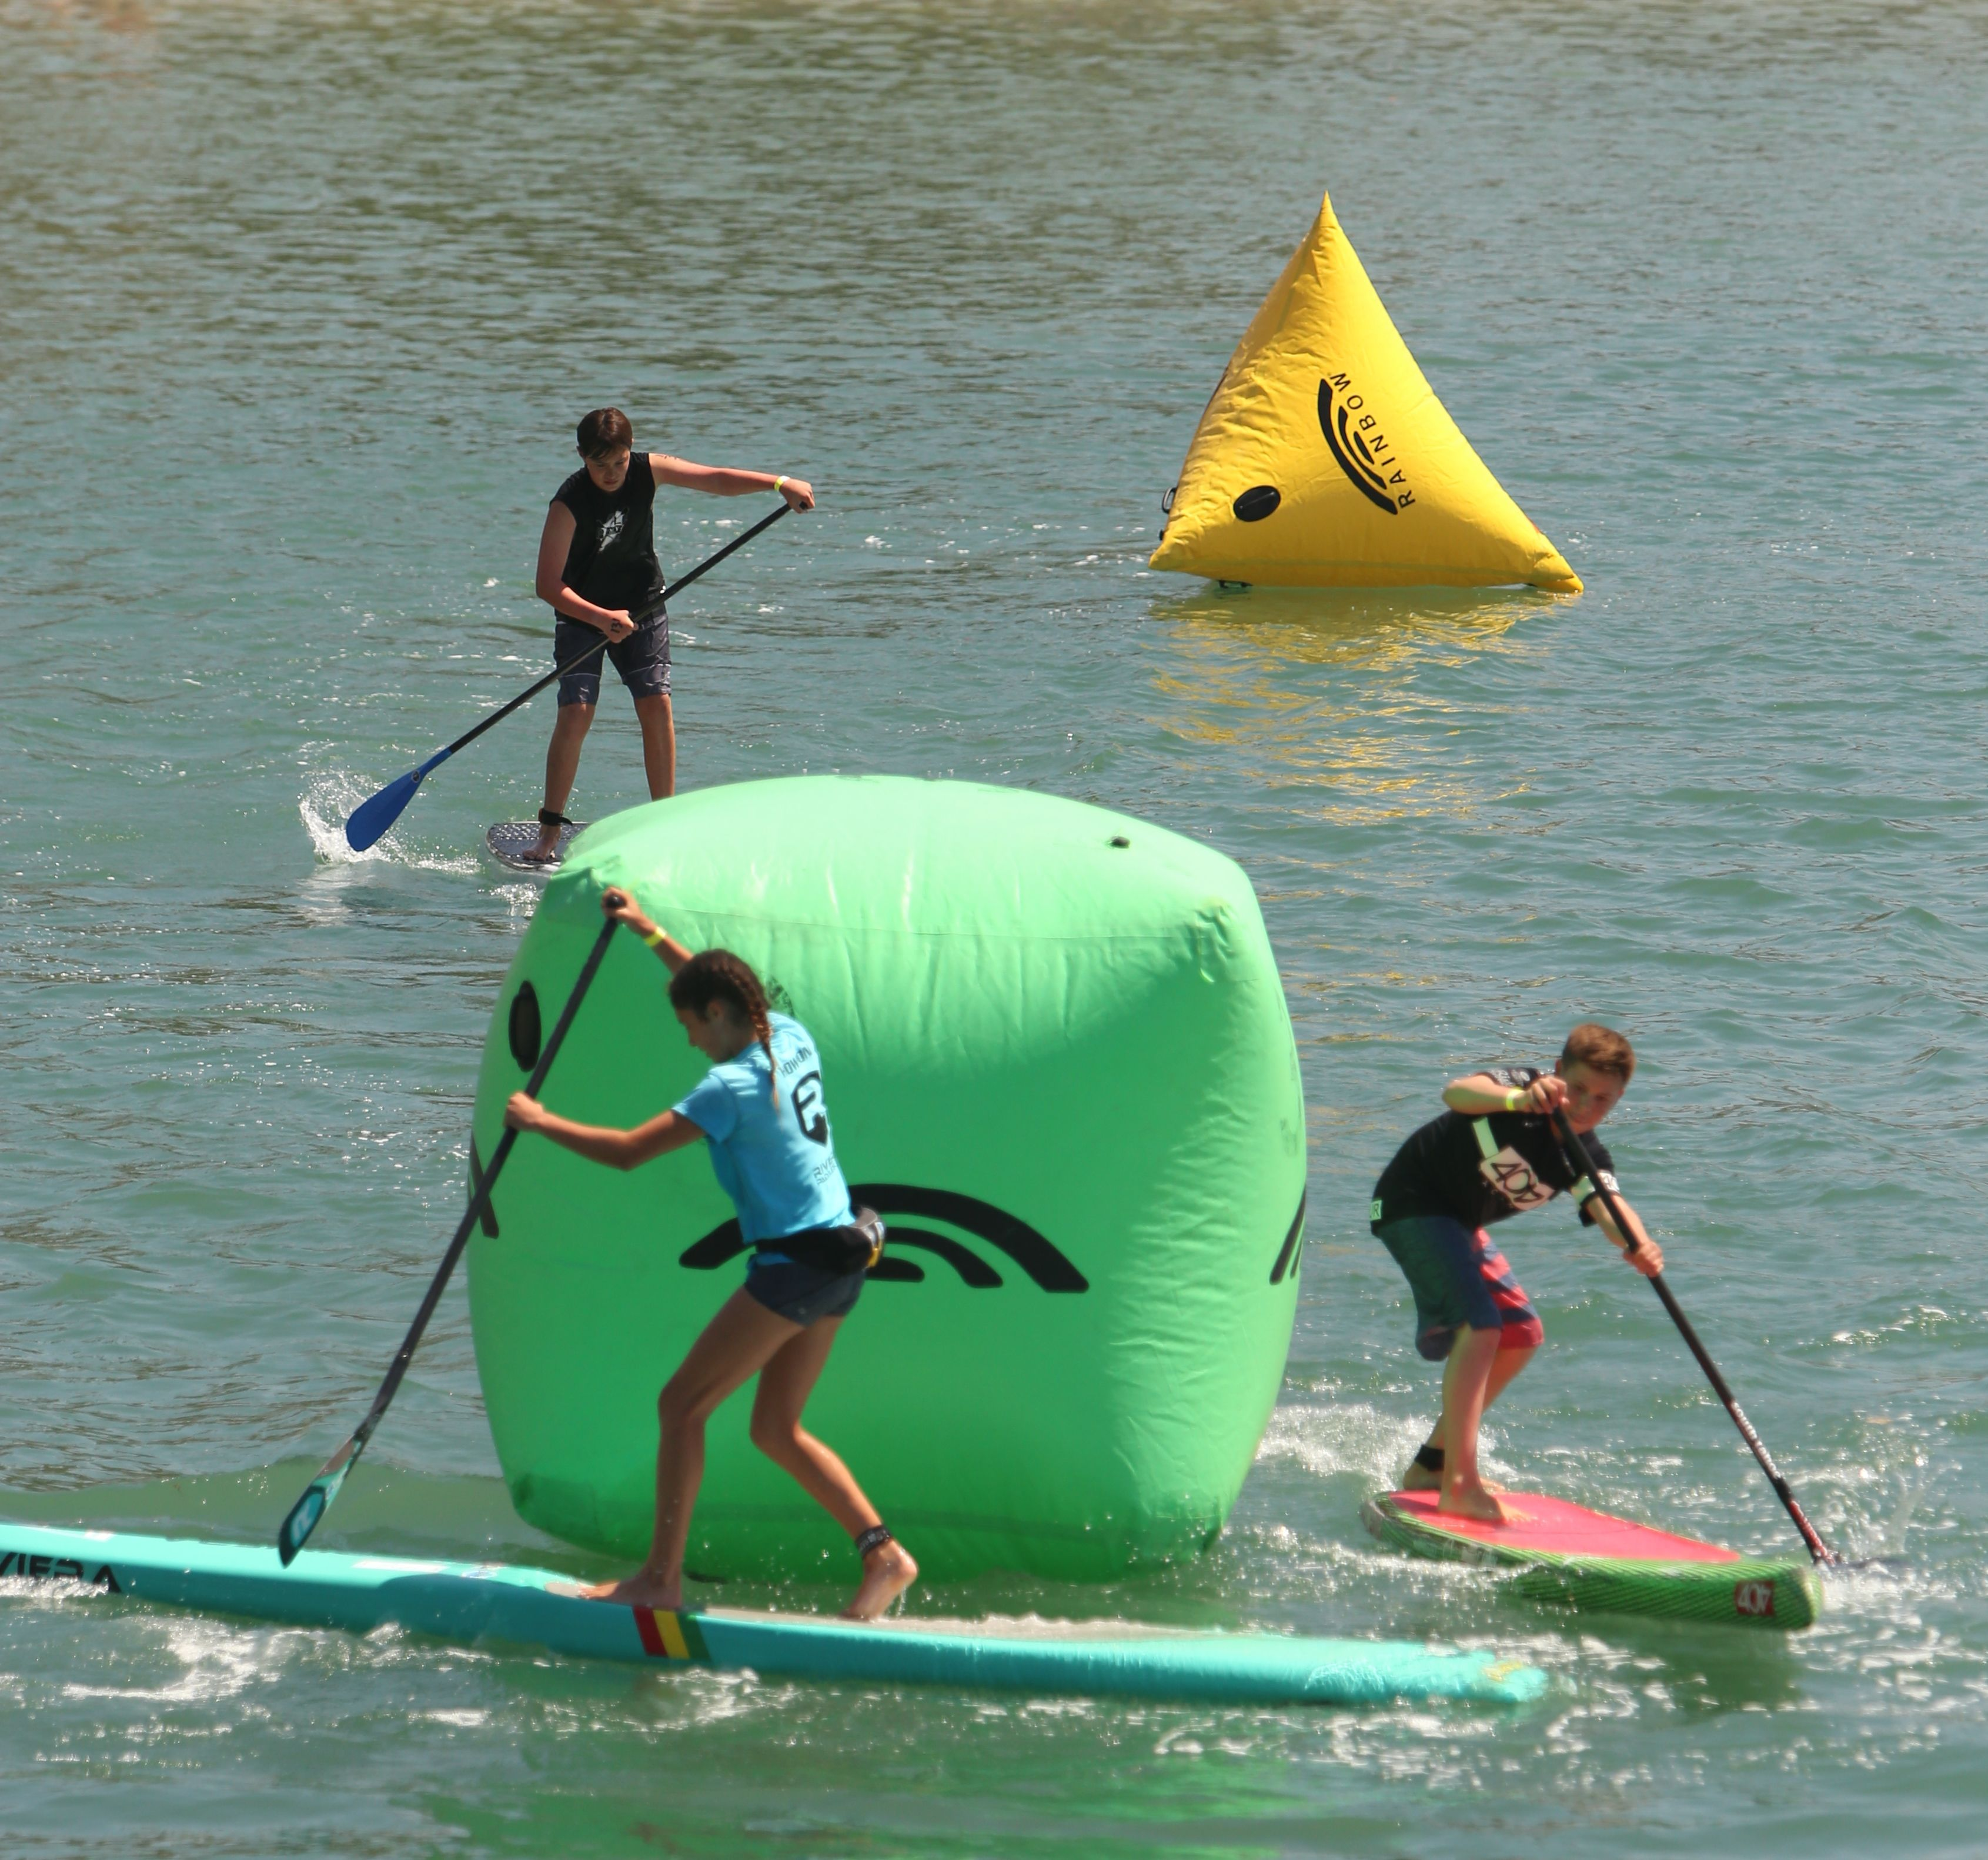 Youth racers round a buoy at the Mickey Munoz Mongoose Cup, Dana Point, April 18, 2015. Photo: Bill Schildge